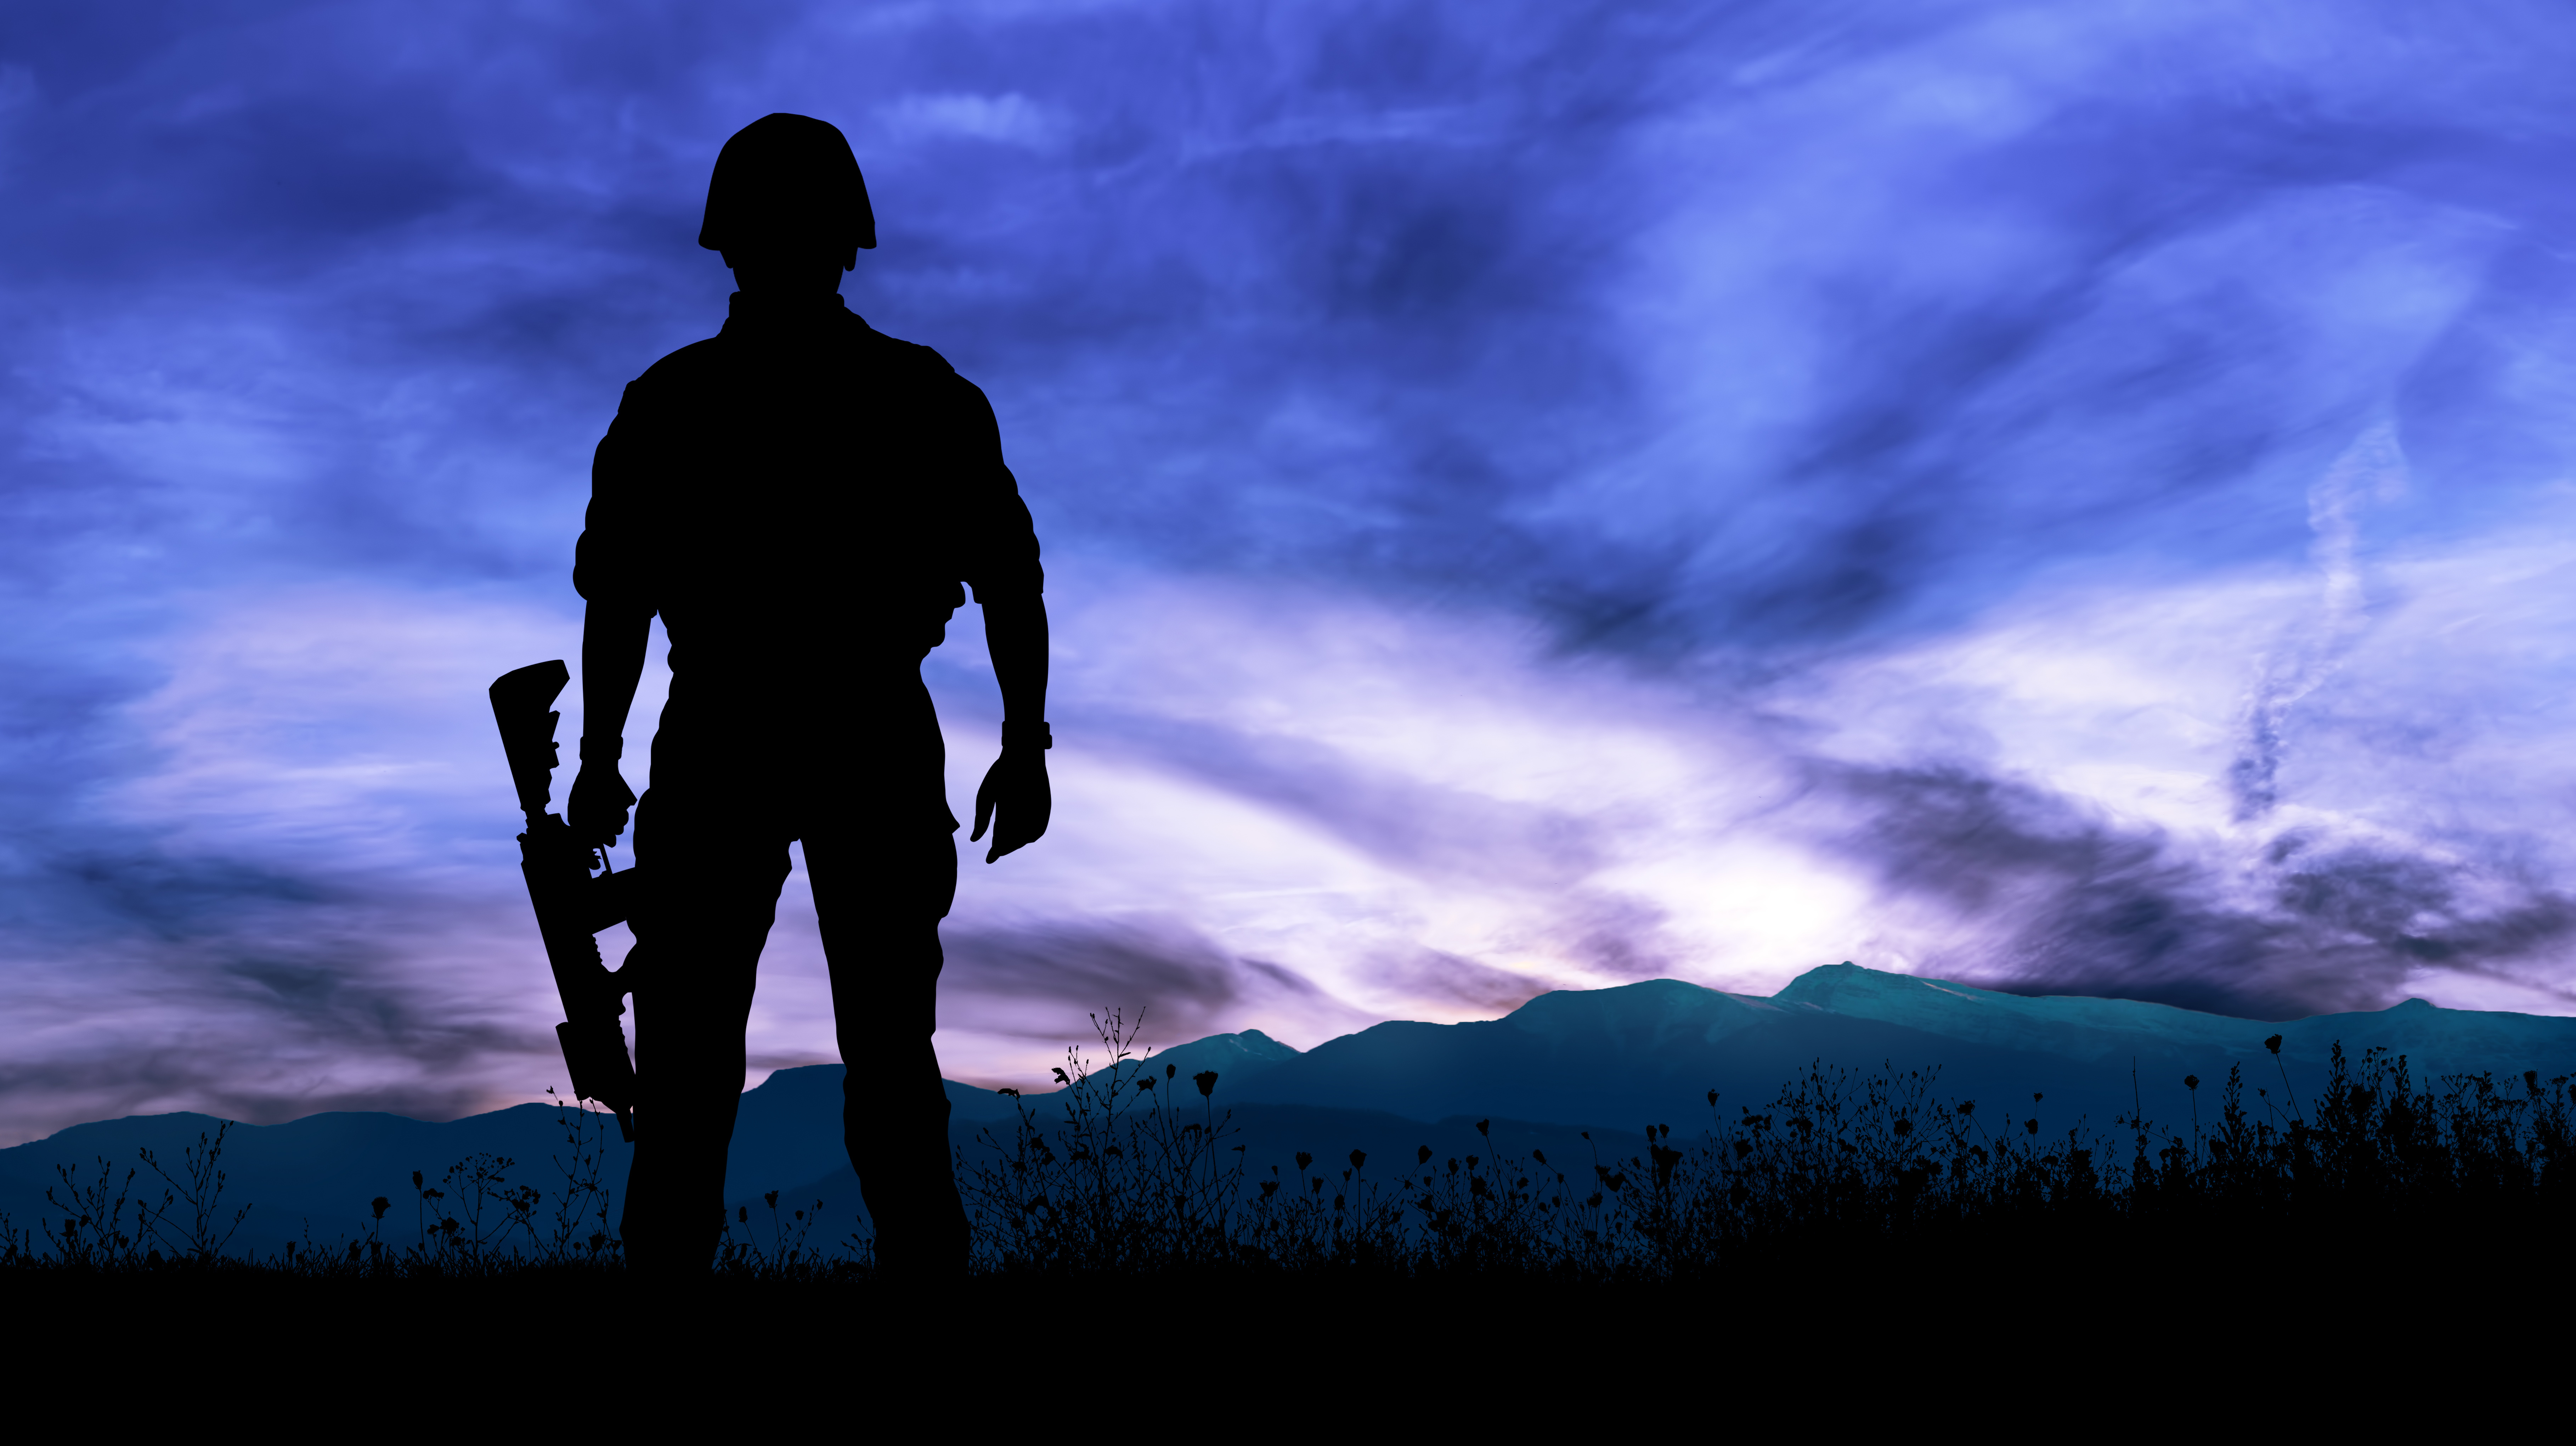 Silhouette of military soldier or officer with weapons at night